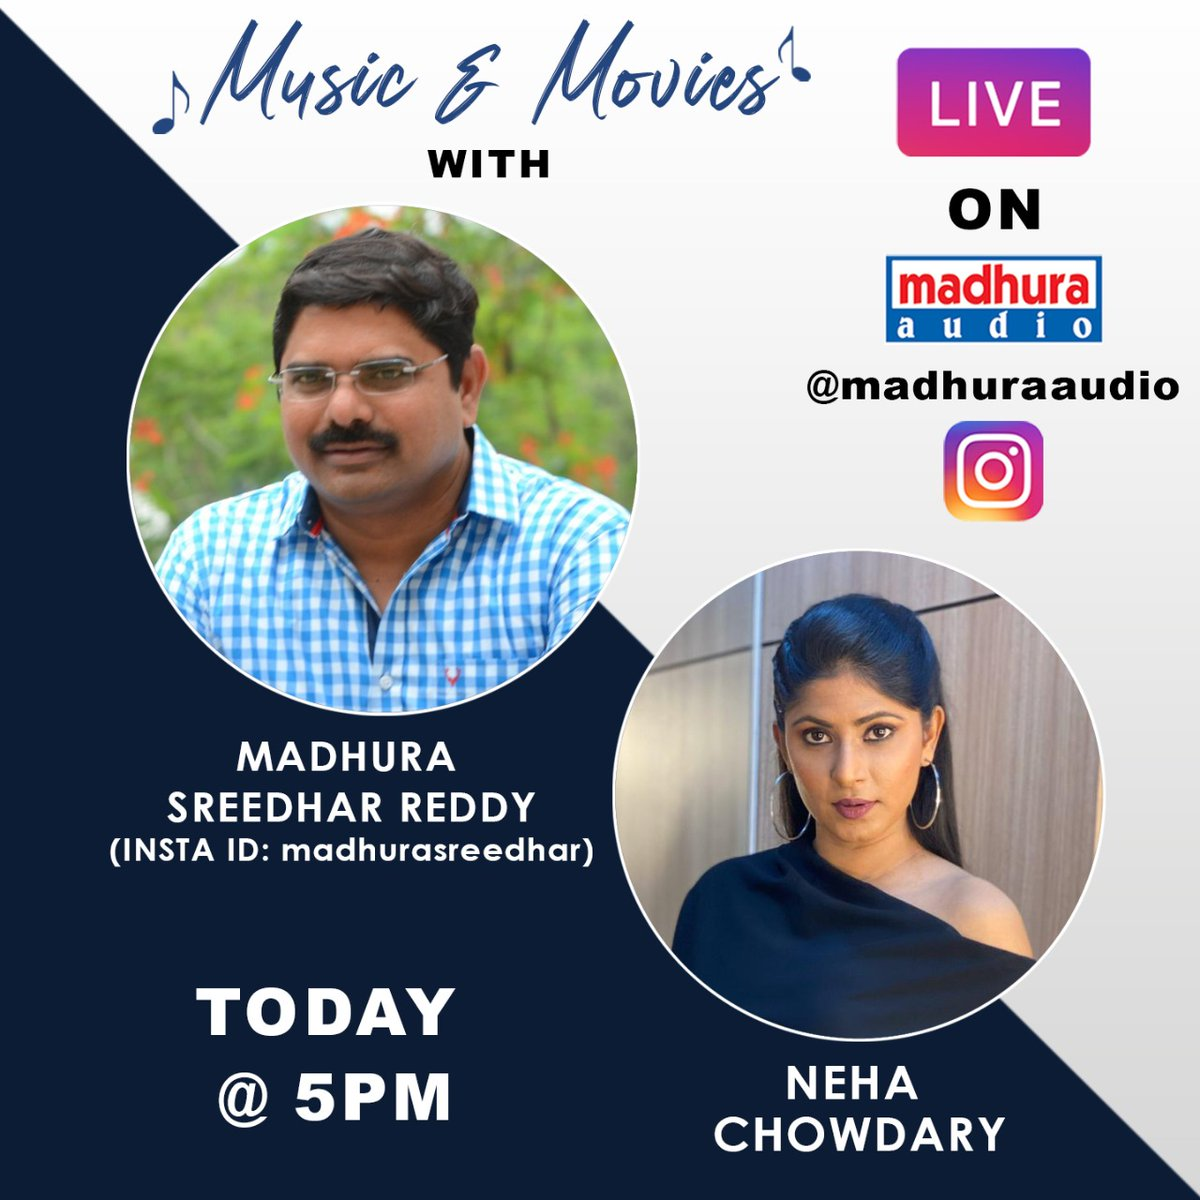 Look Here Who's Joining With Us In Live The Most Lovable Person And Producer @madhurasreedhar Garu Will Be In Live With Anchor @thenehachowdary Today  @ 5 PM Stay Tuned To @MadhuraAudio Insta Handle  #YoursMusically #yoursmusically #telugumusically #TeluguMusic  #madhuraaudiopic.twitter.com/b1hB8hWHio